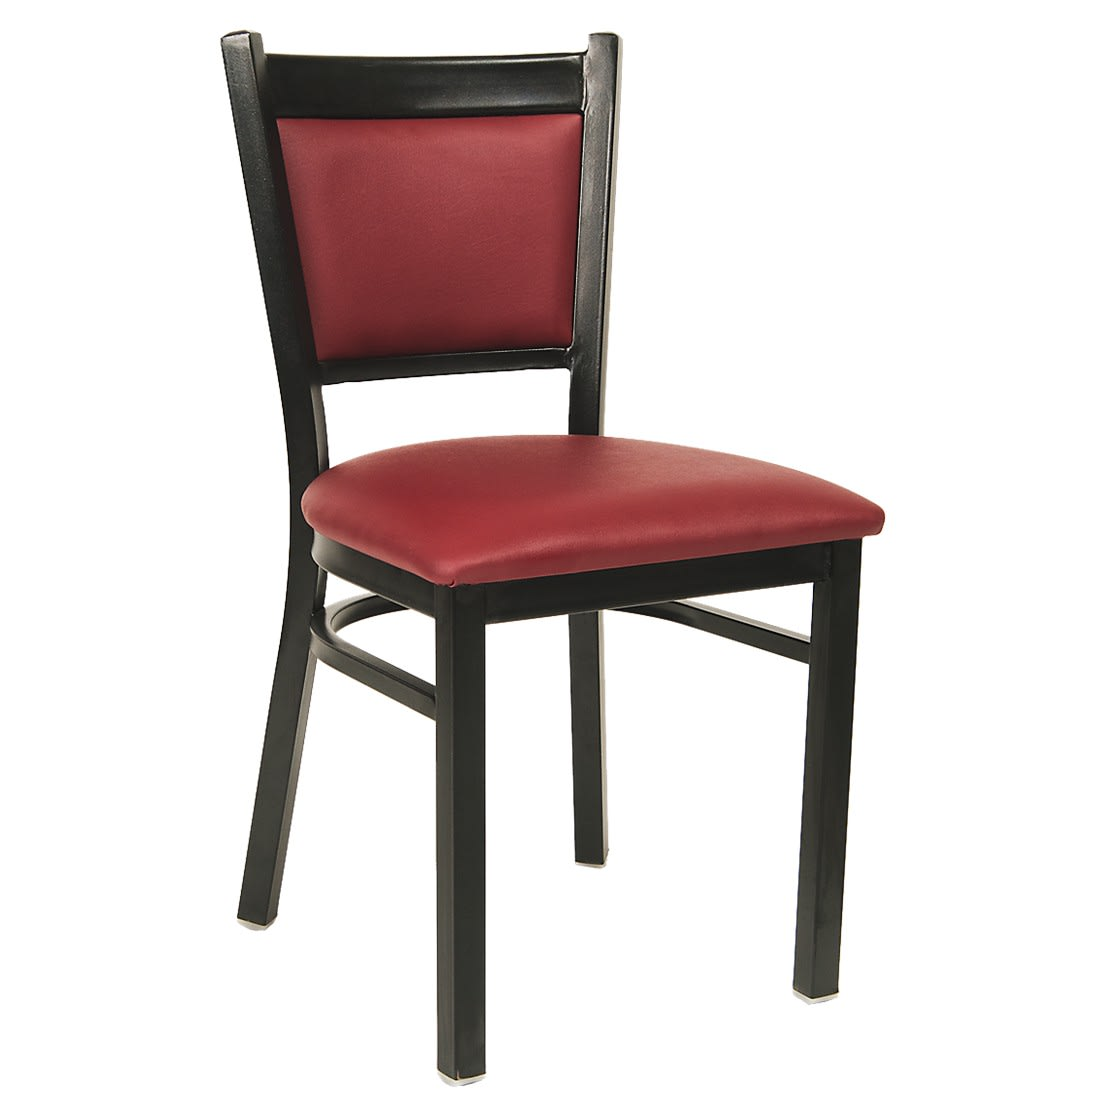 Black Metal Chair with Burgundy Padded Vinyl Seat and Back